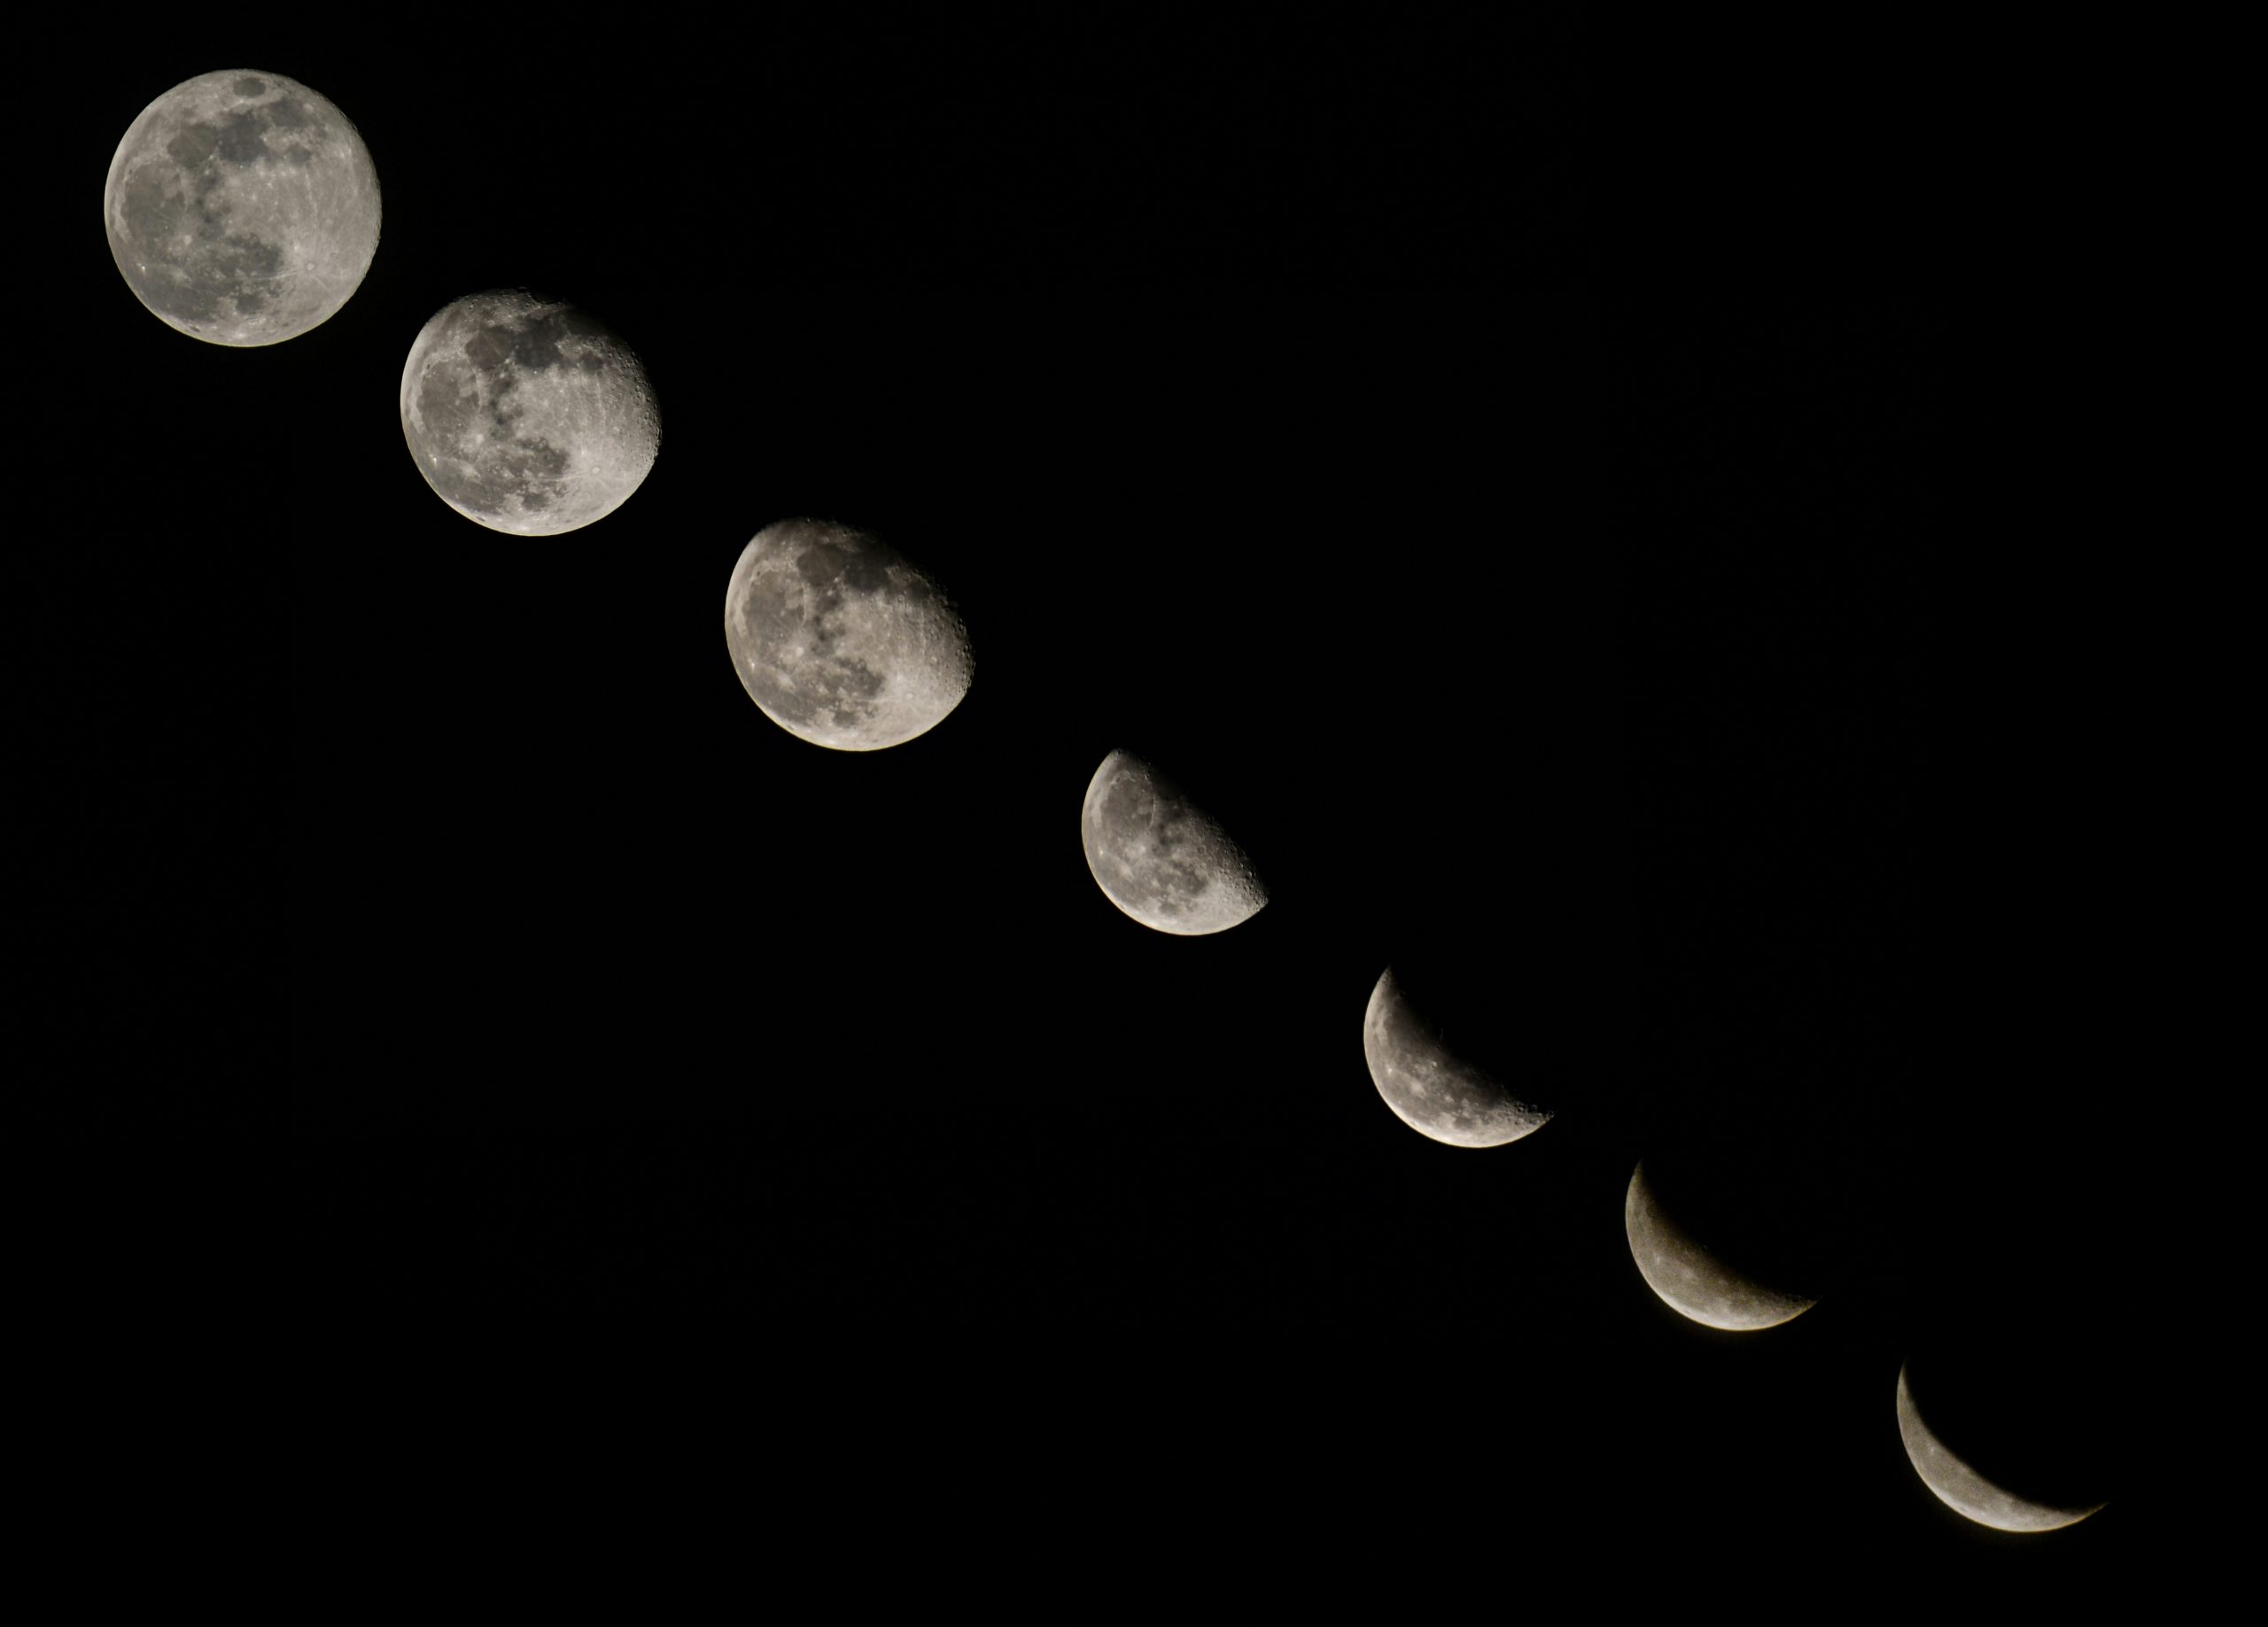 Different phases of moon.